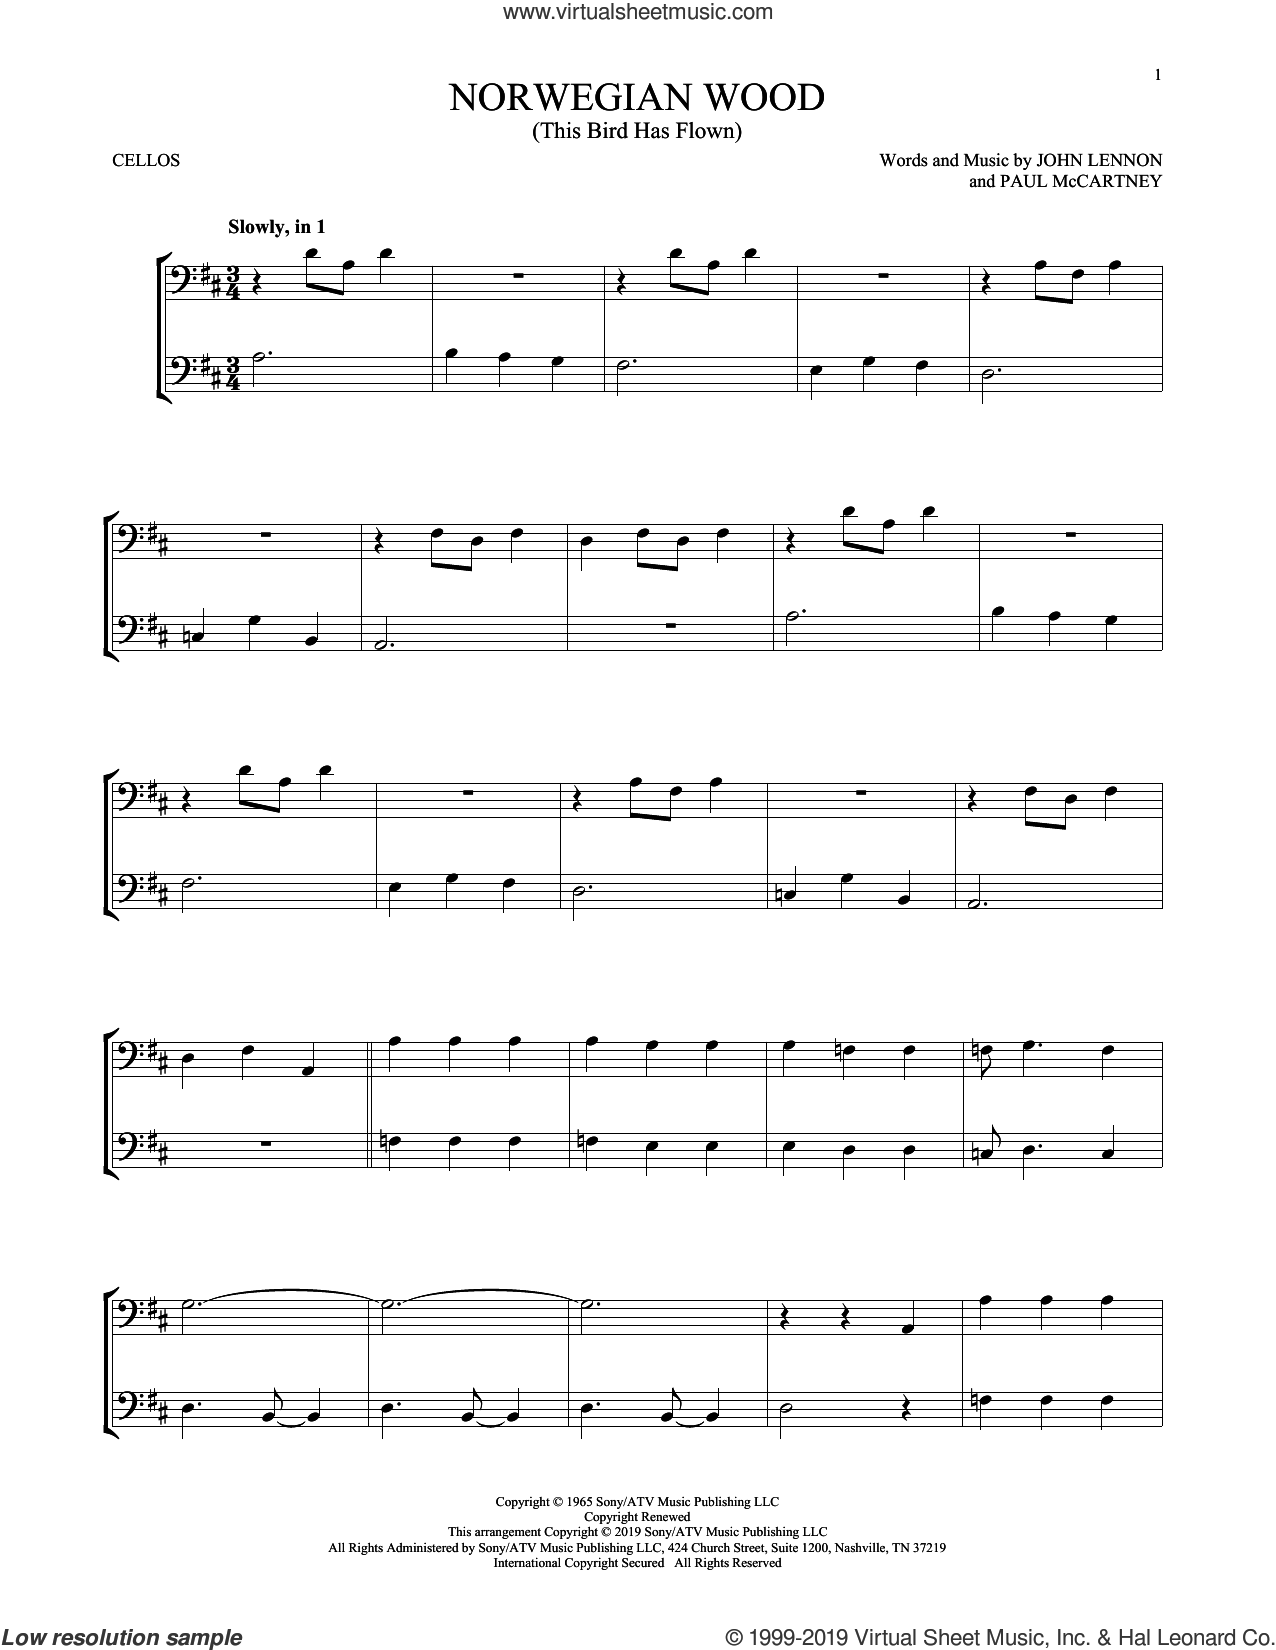 Norwegian Wood (This Bird Has Flown) sheet music for two cellos (duet, duets) by The Beatles, John Lennon and Paul McCartney, intermediate skill level